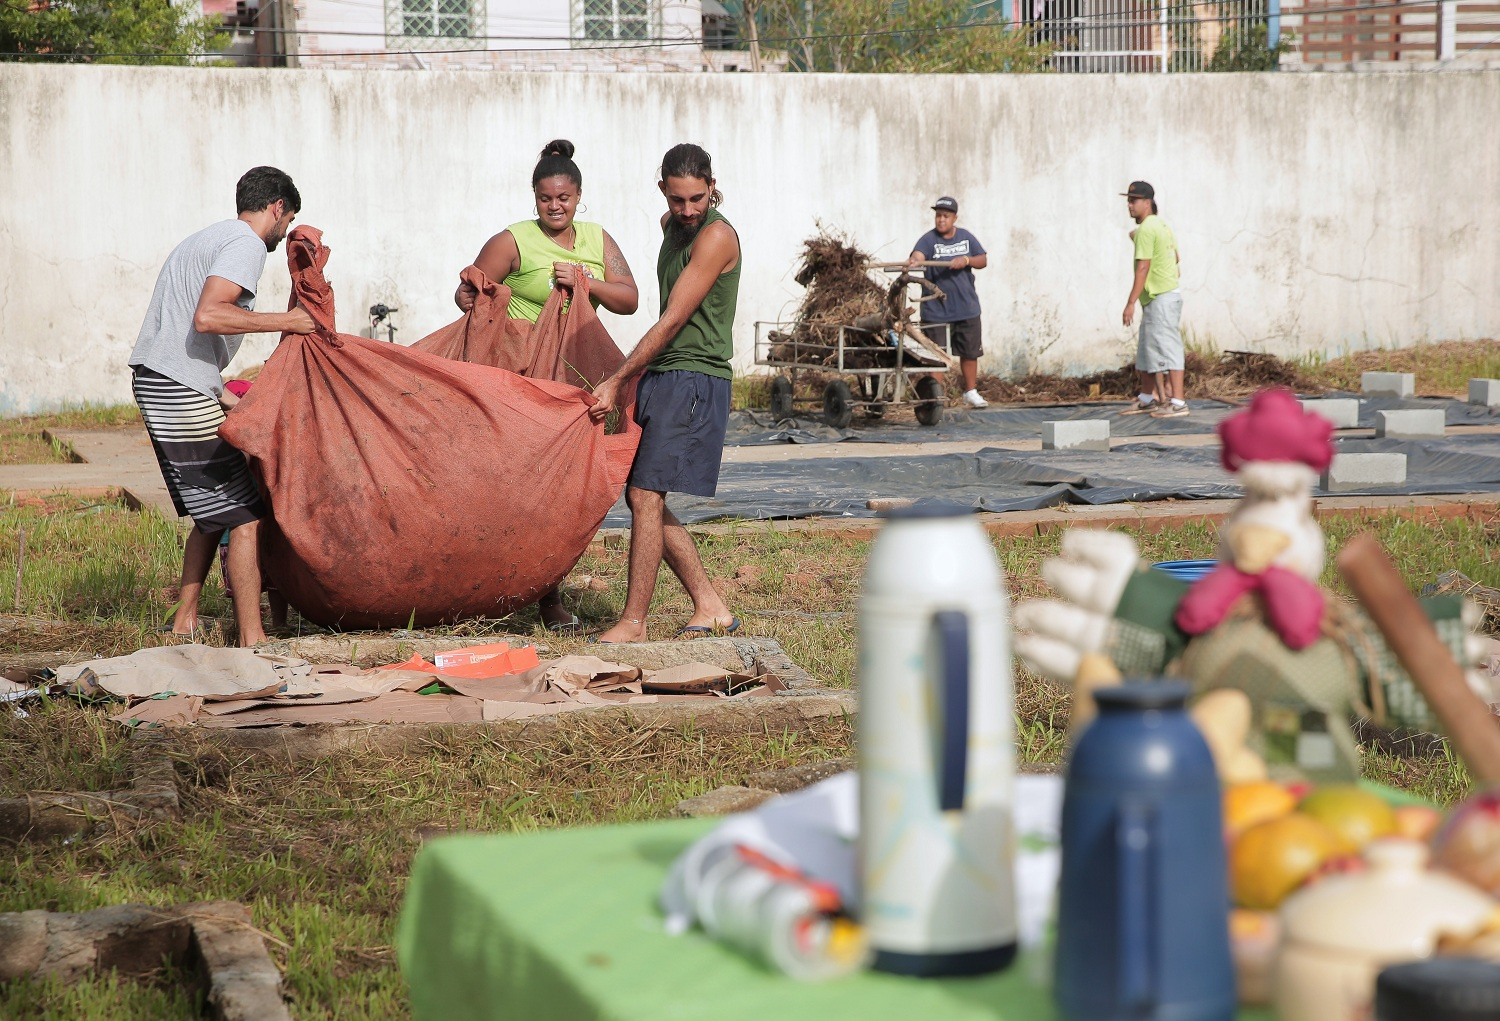 In the foreground is a table, slightly out of focus, with some food and thermos bottles. In the background is a group of 3 people carrying a tarpaulin with something inside it, presumably dirt. They are in a grassy yard. In the background is a concrete wall.